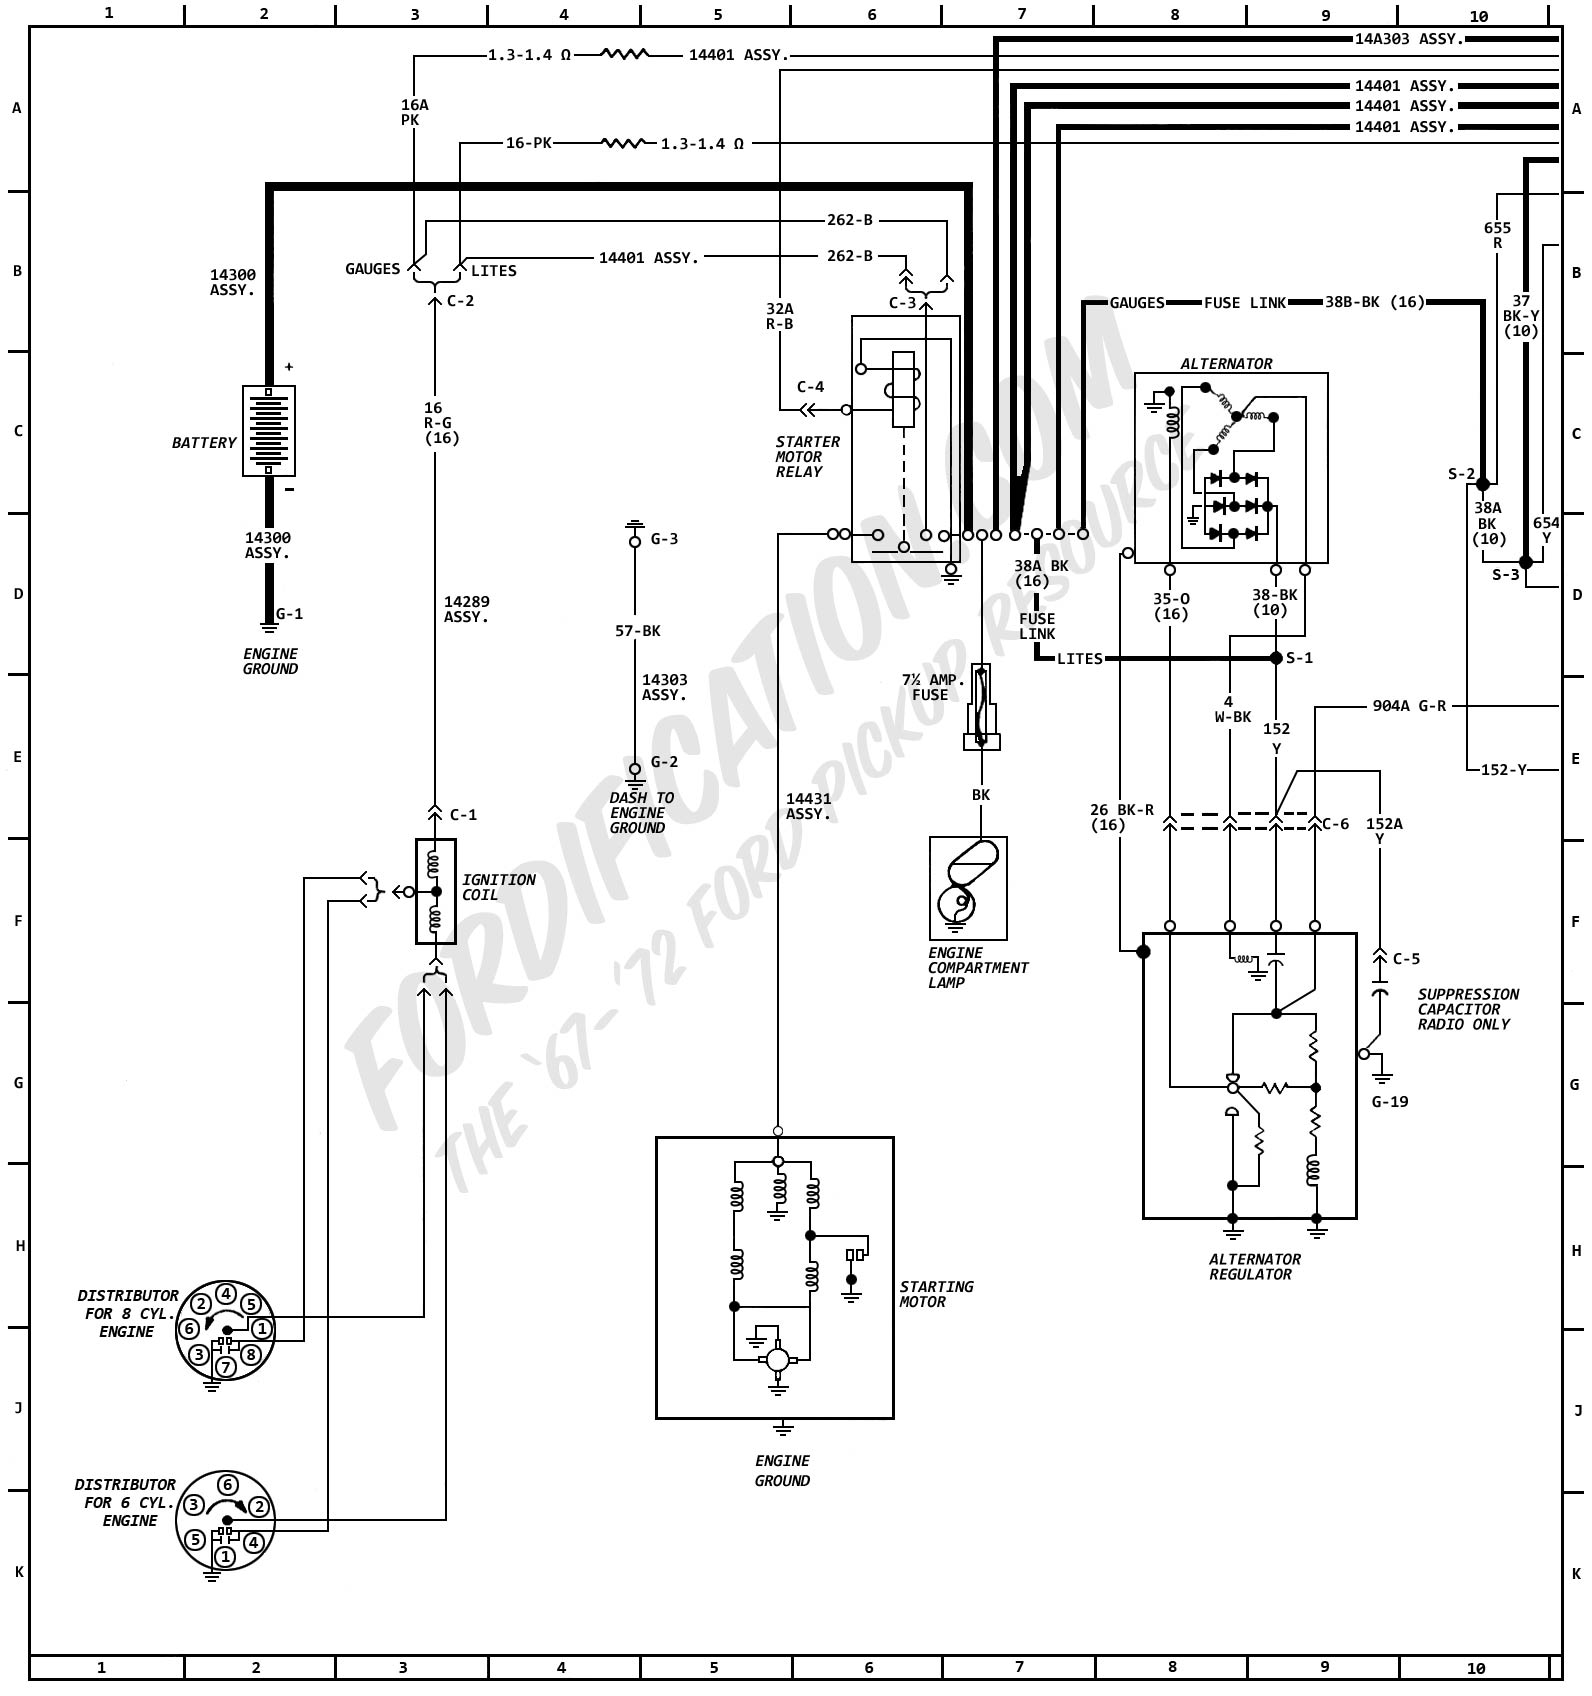 Wiring Harness For 1969 Ford F100 Custom Diagram Bronco 1972 F250 Schematics Diagrams U2022 Rh Seniorlivinguniversity Co